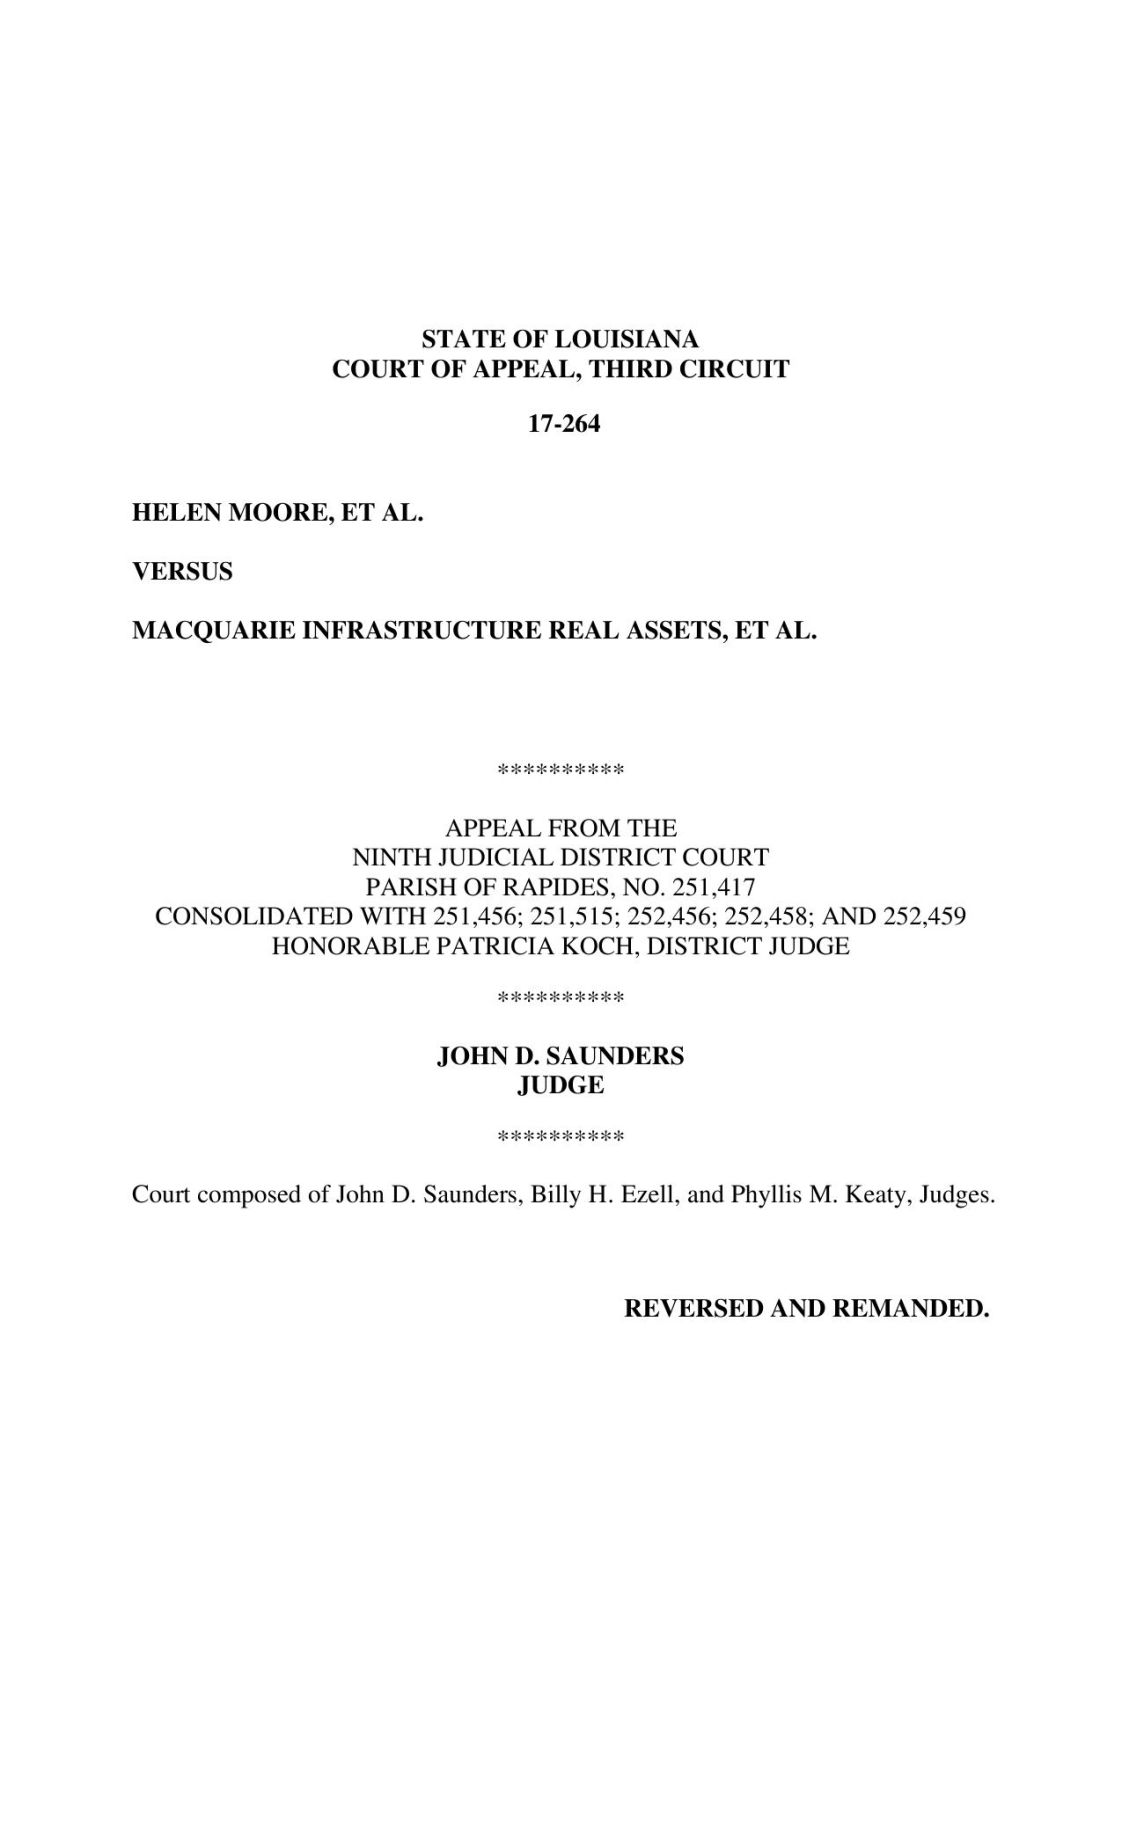 Third Circuit Court of Appeal